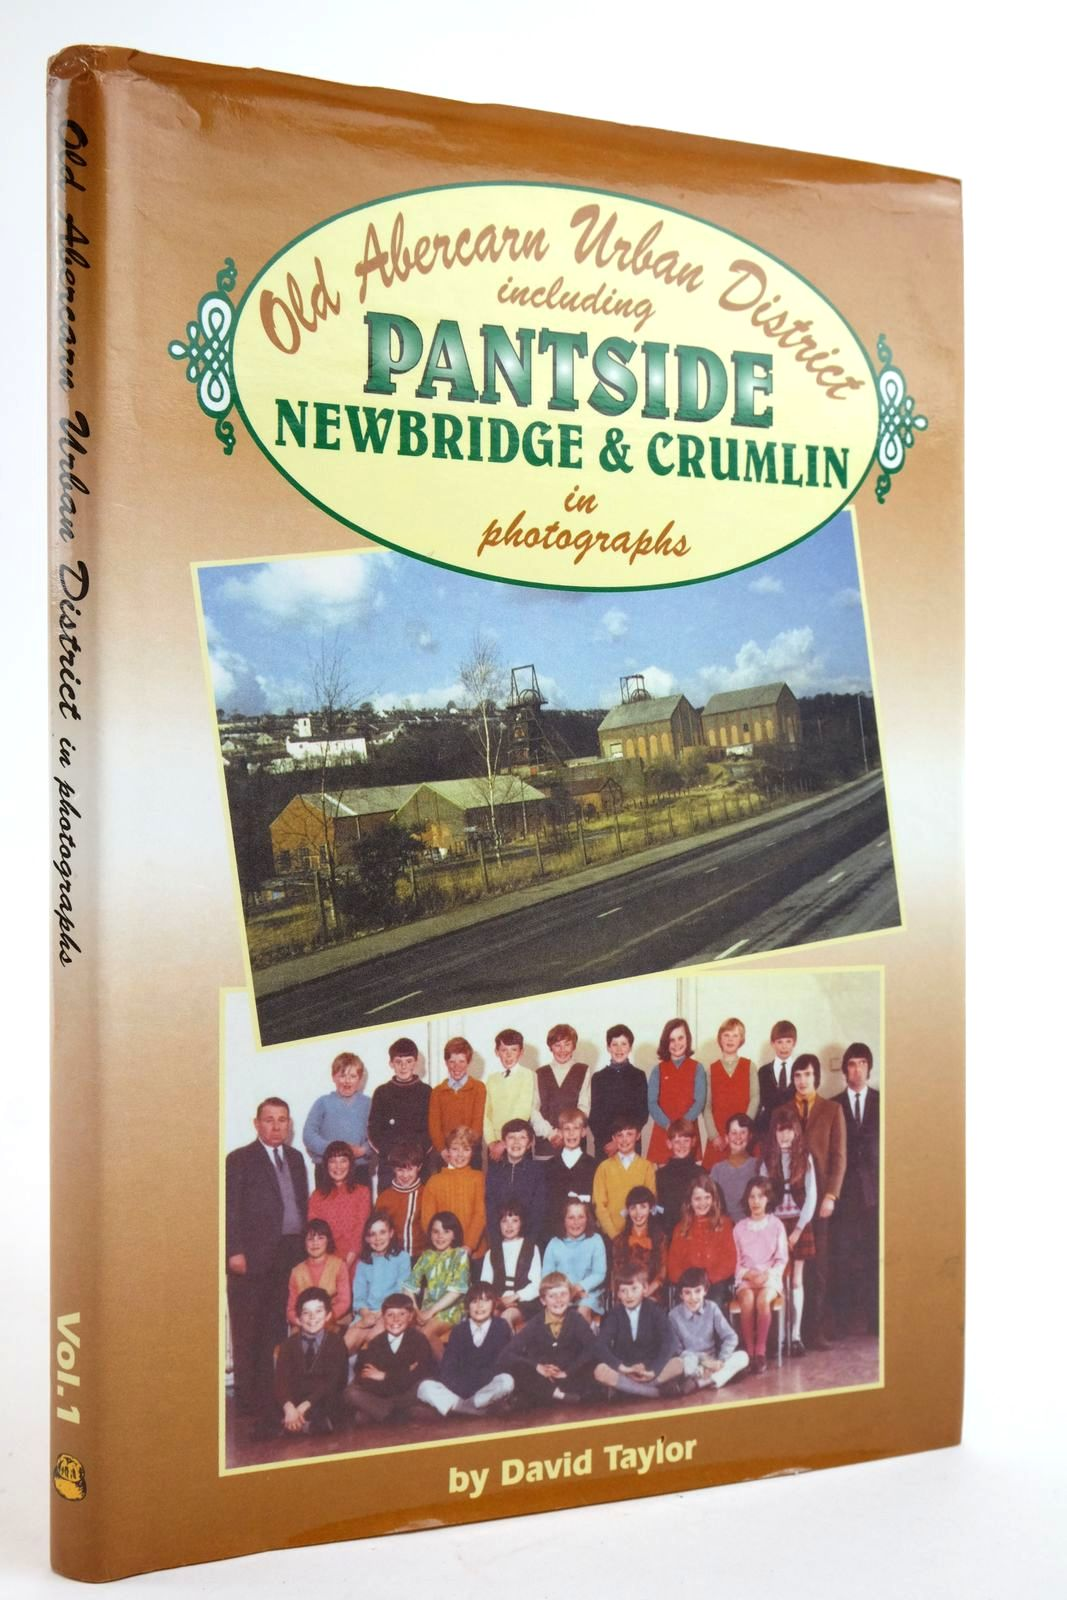 Photo of OLD ABERCARN URBAN DISTRICT INCLUDING PANTSIDE NEWBRIDGE & CRUMLIN IN PHOTOGRAPHS- Stock Number: 2135447